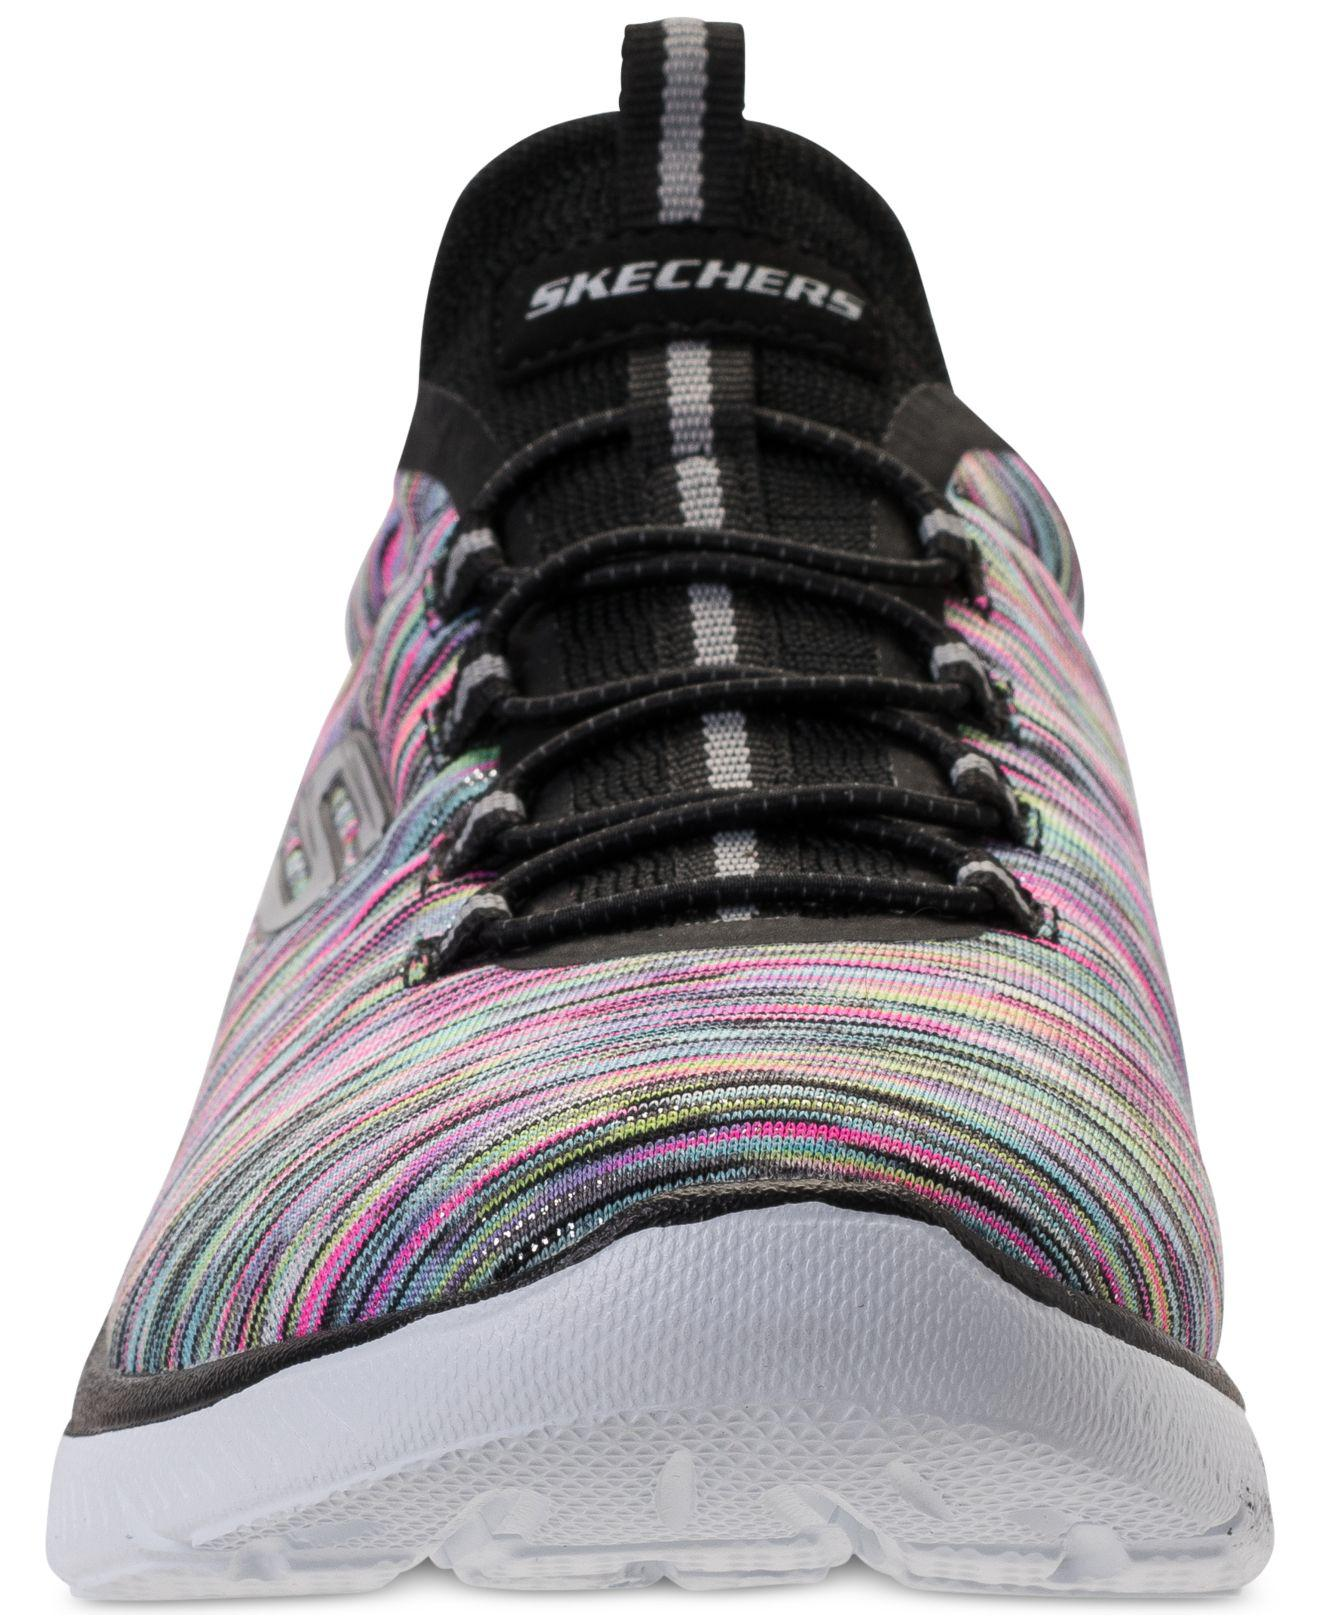 7a21acf20643 Lyst - Skechers Summits - Light Dreaming Wide Width Athletic ...